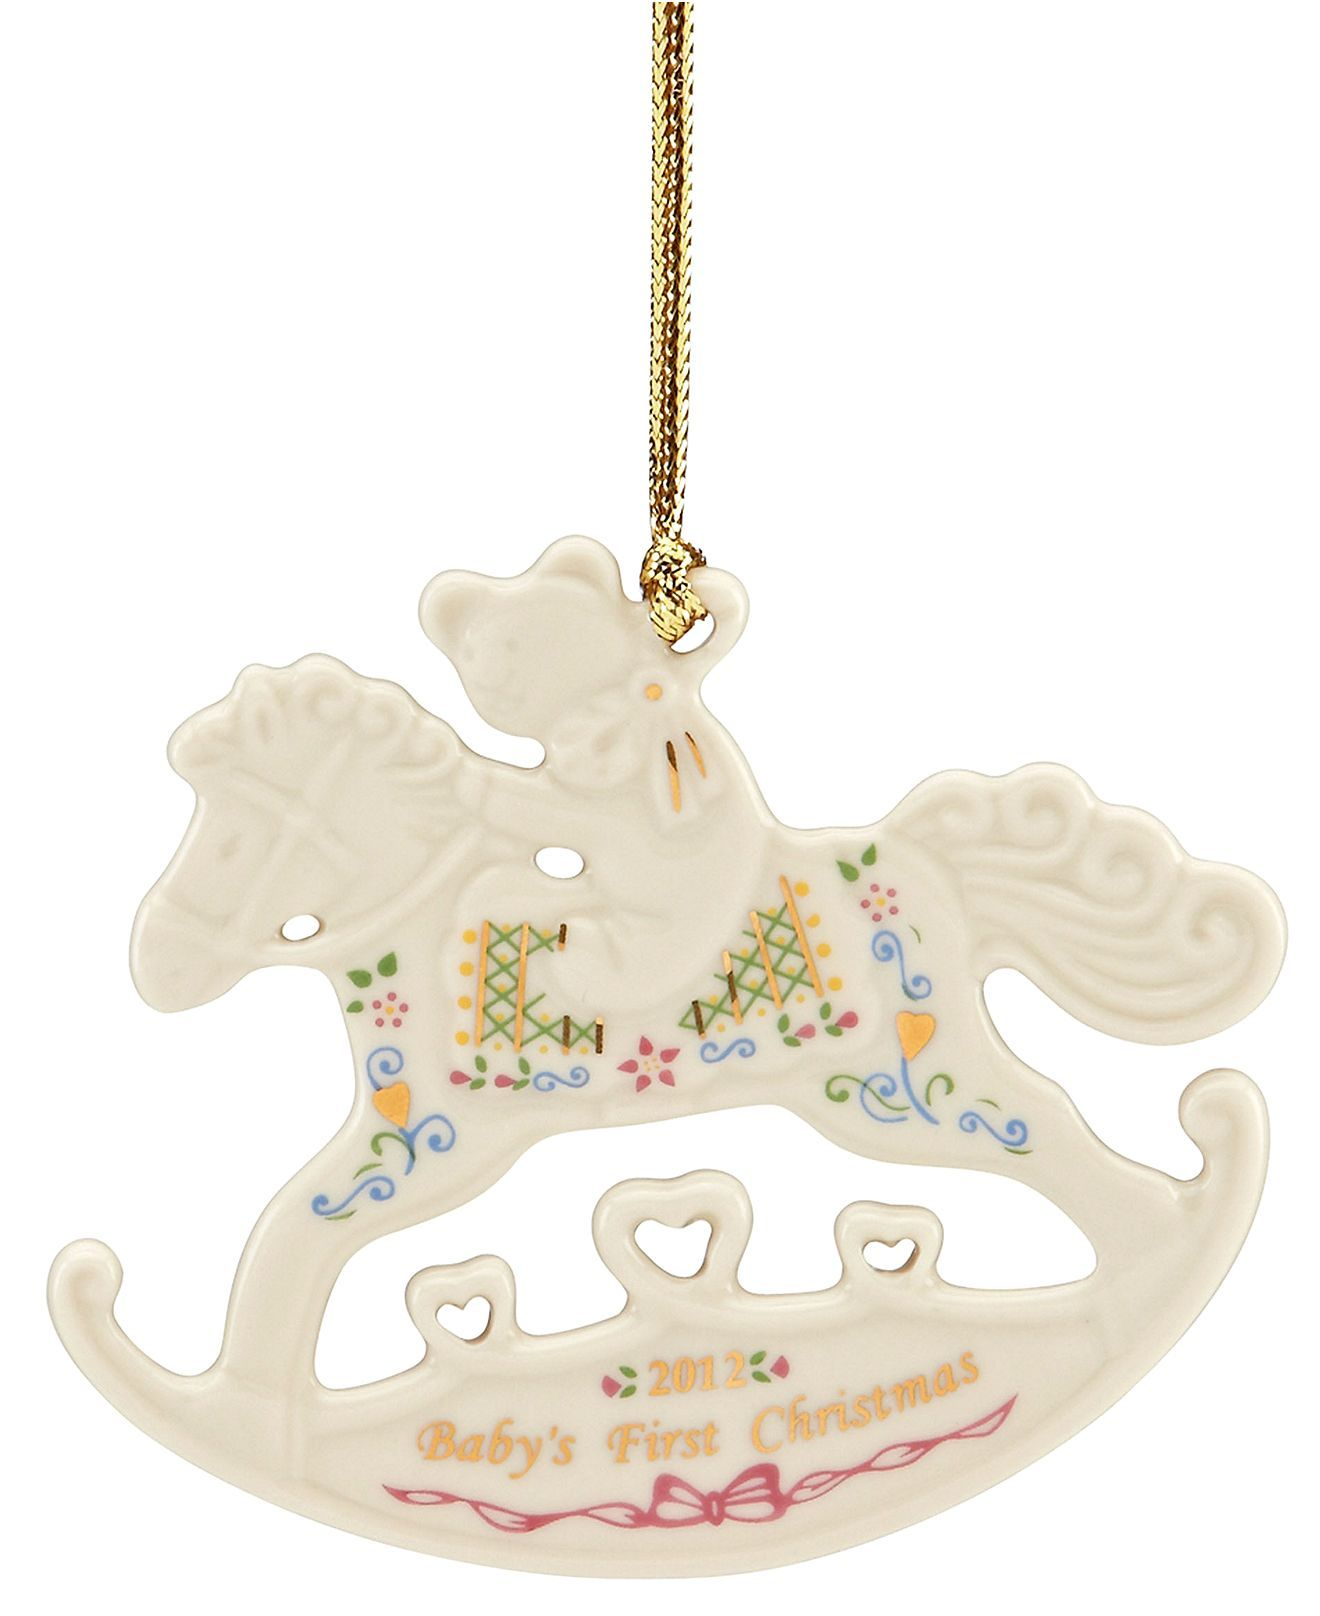 Lenox Christmas Ornament, Exclusive 2012 Baby's First Rocking Horse  2012 Christmas  Ornaments  Holiday Lane  Macy's  Holidays  Pinterest  Rocking